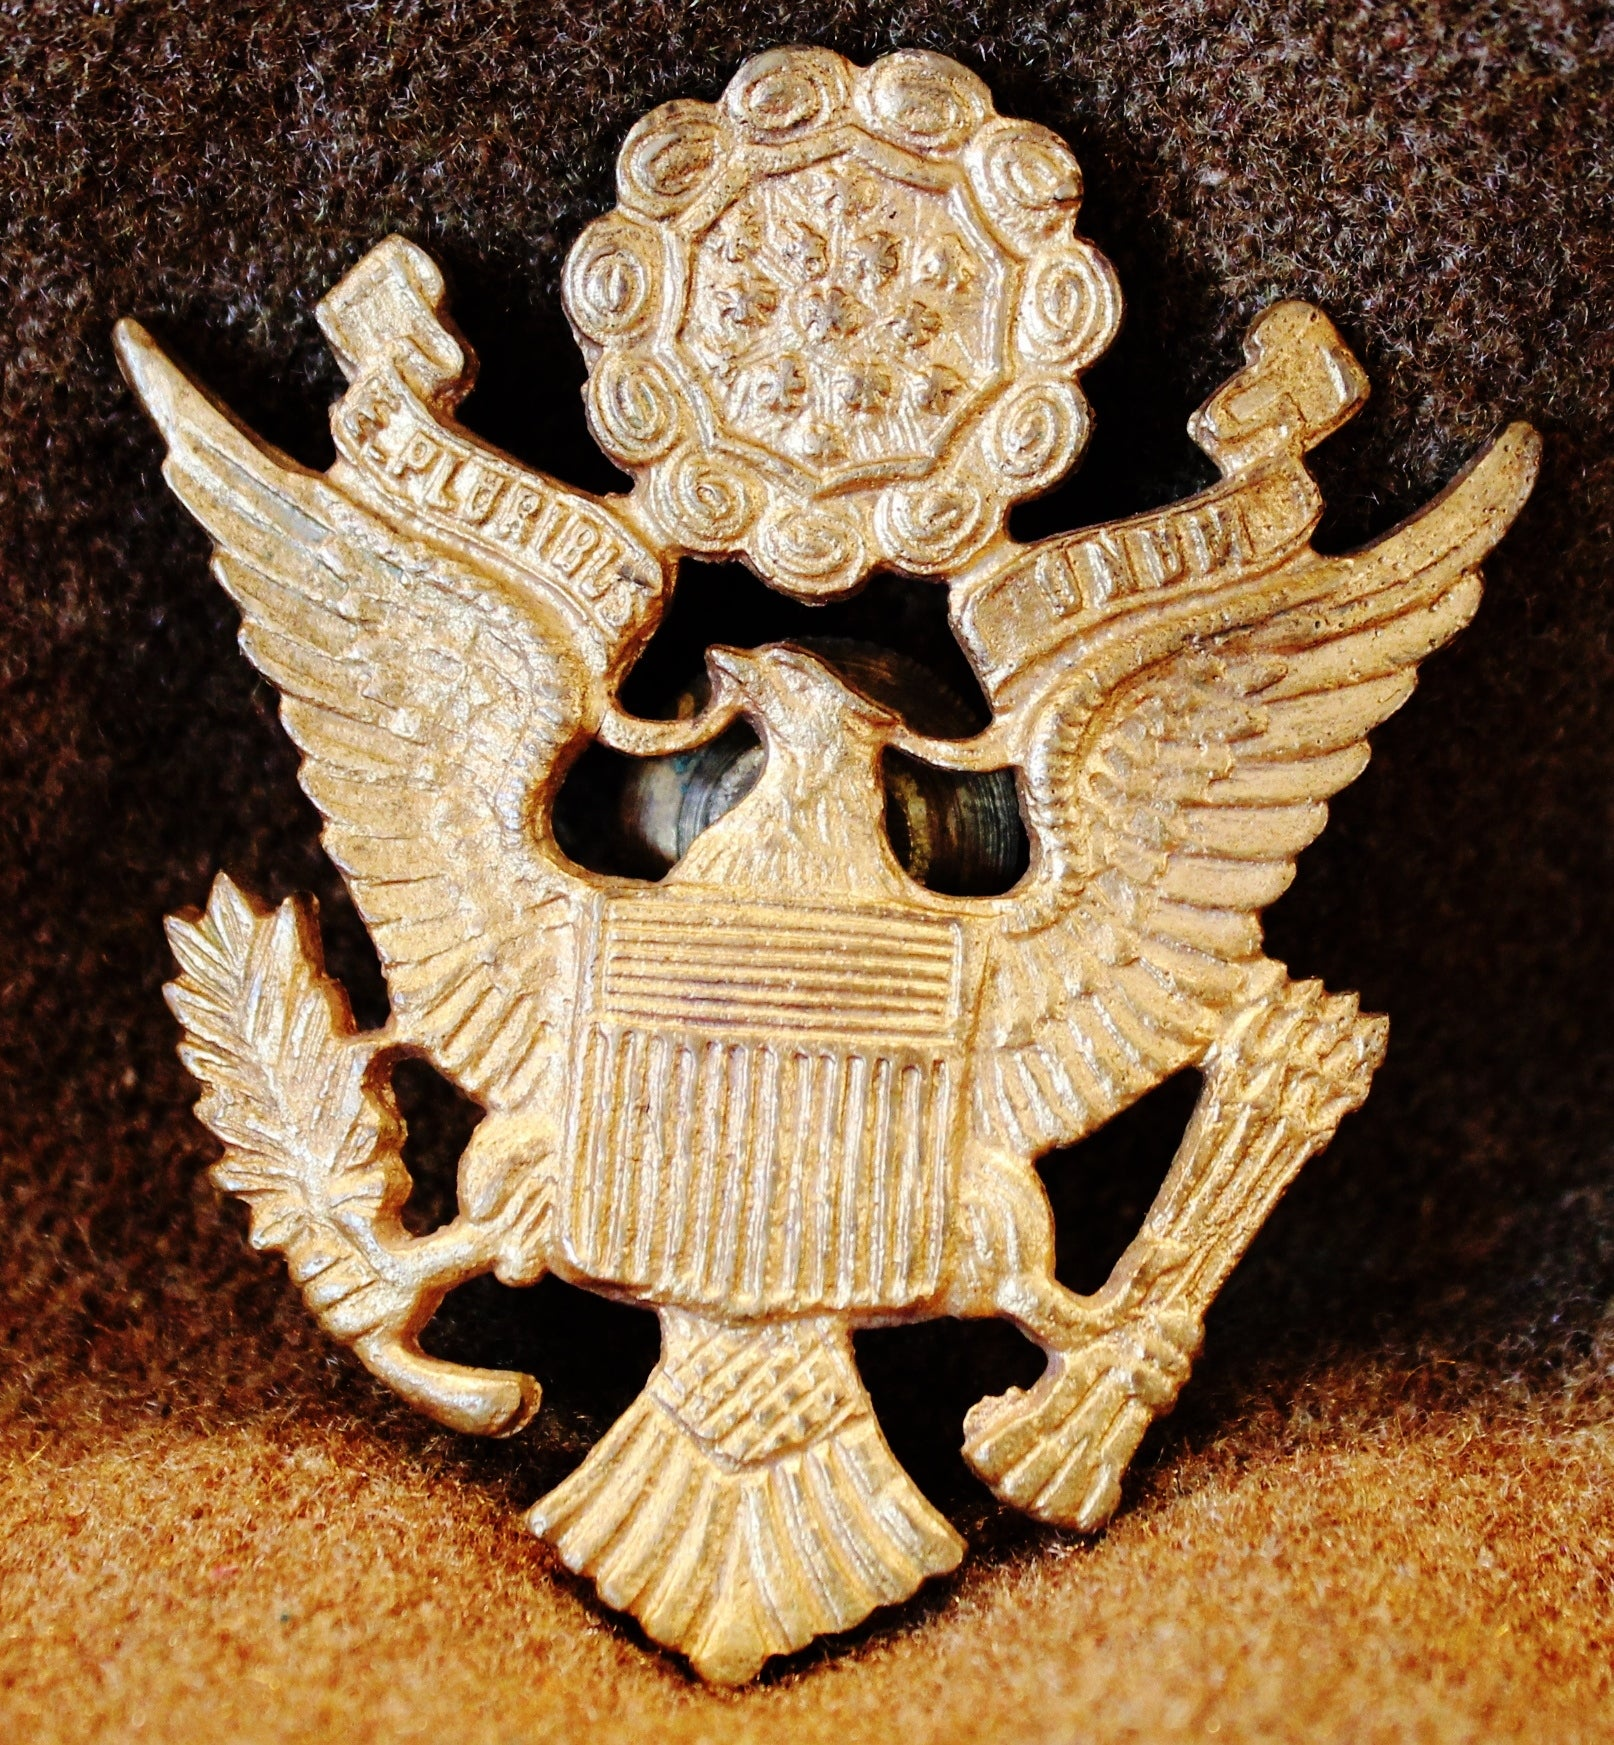 LATE 30's THRU WWII US ARMY/ARMY AIR FORCE OFFICER'S HAT BADGE